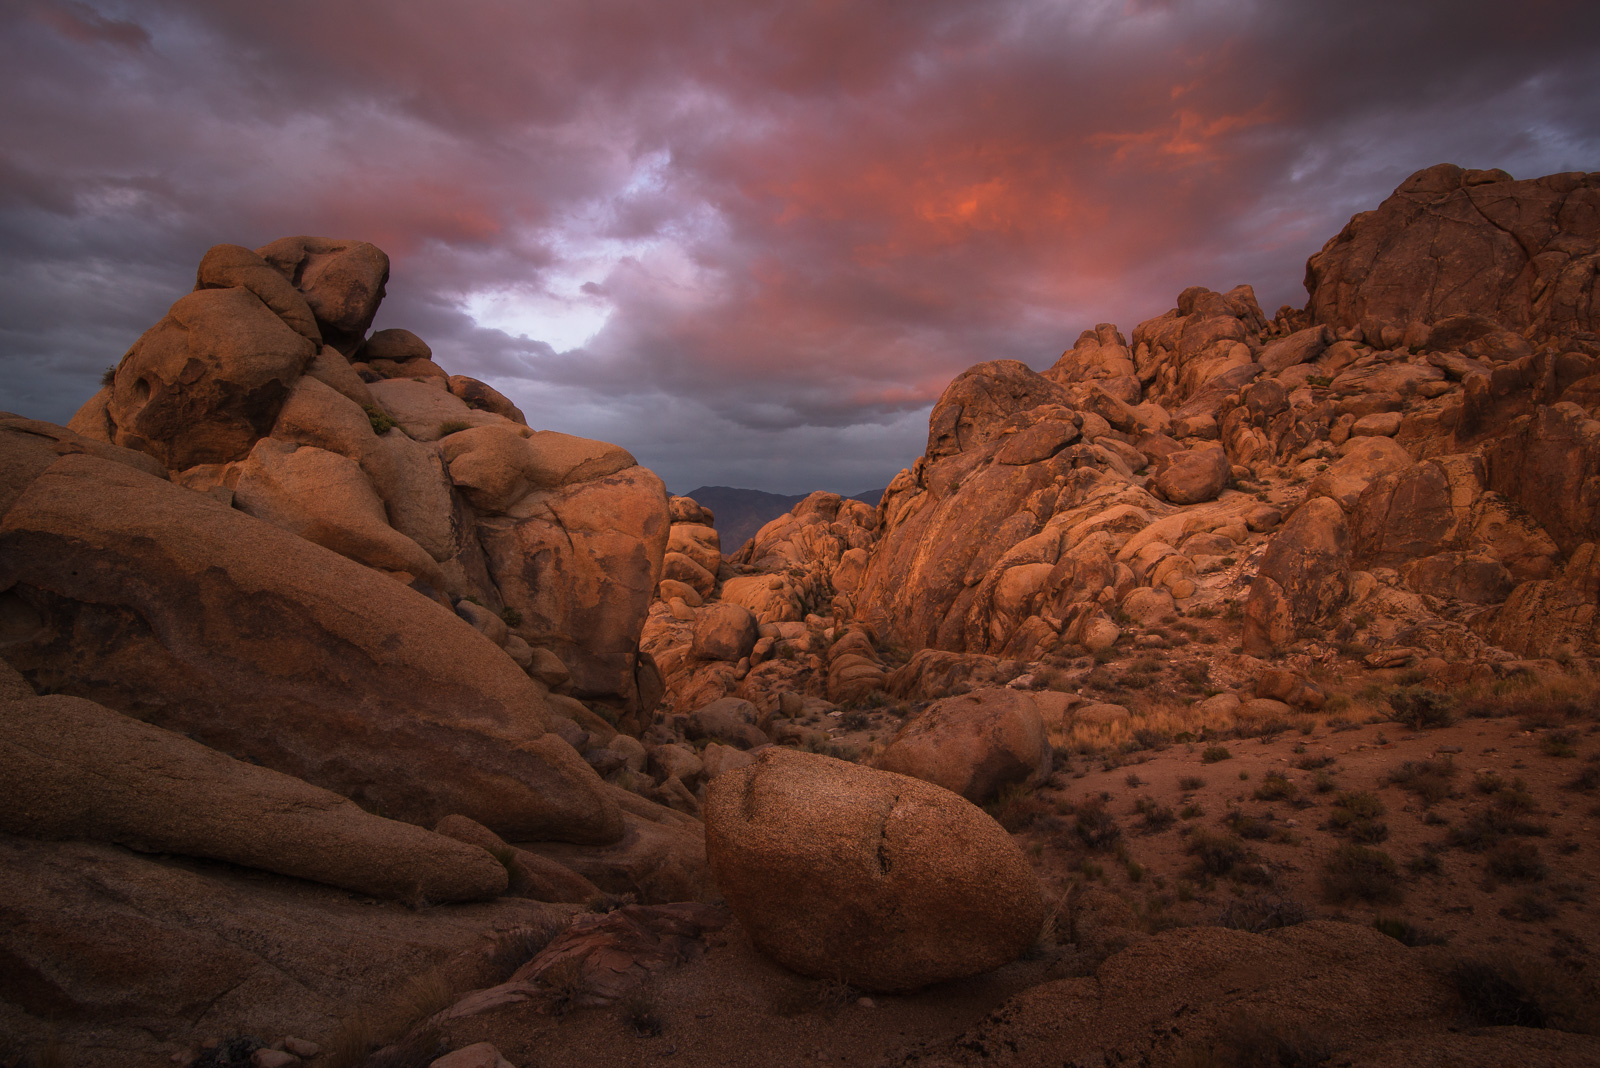 A stormy and dramtic sunset from inside a garden of granite, Alabama Hills.